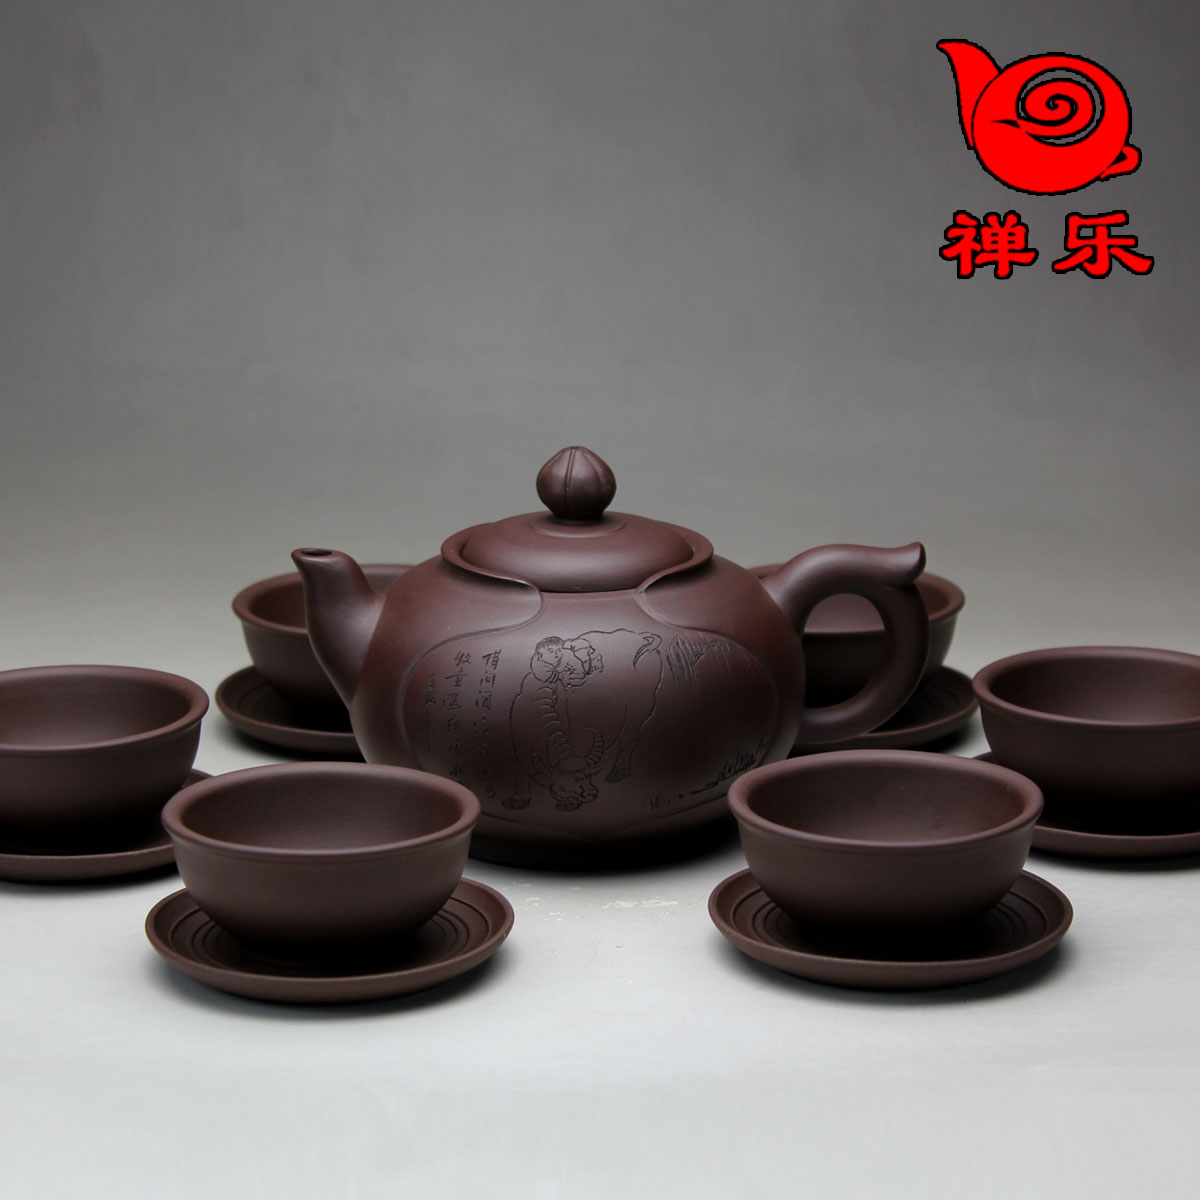 Yixing teapot tea set purple clay pot set gift cattle isonuclear allocytoplasmic(China (Mainland))